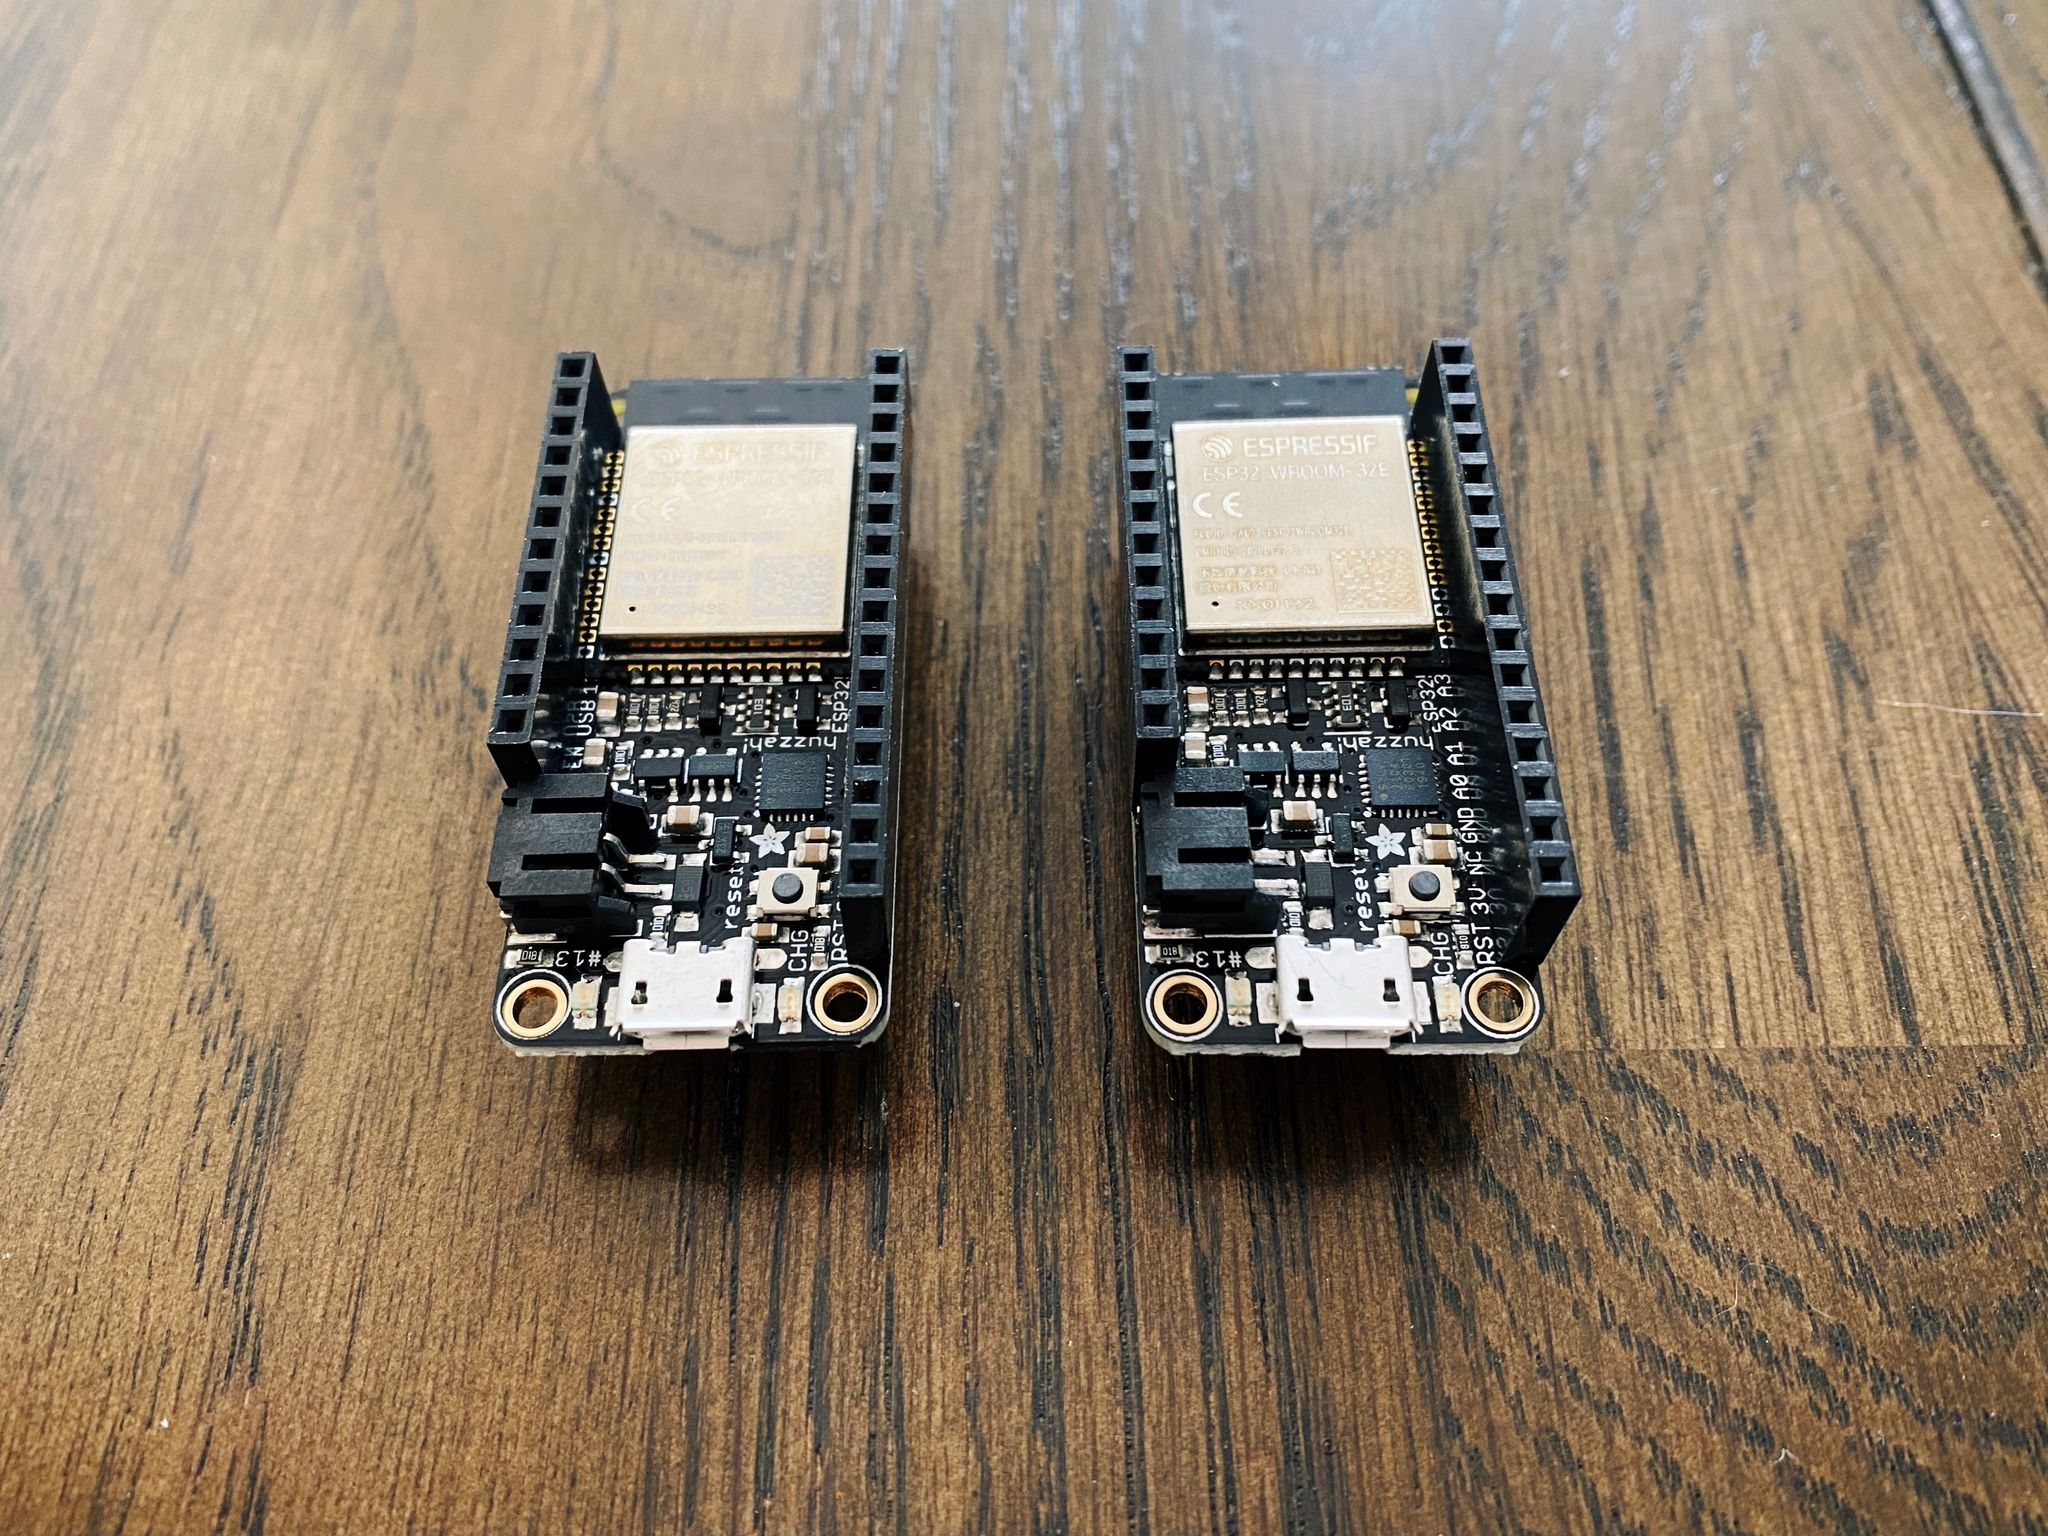 A photo of two very little rectangular circuit boards with various chips on them, and a row on either side of the boards with black plastic headers for plugging things into.